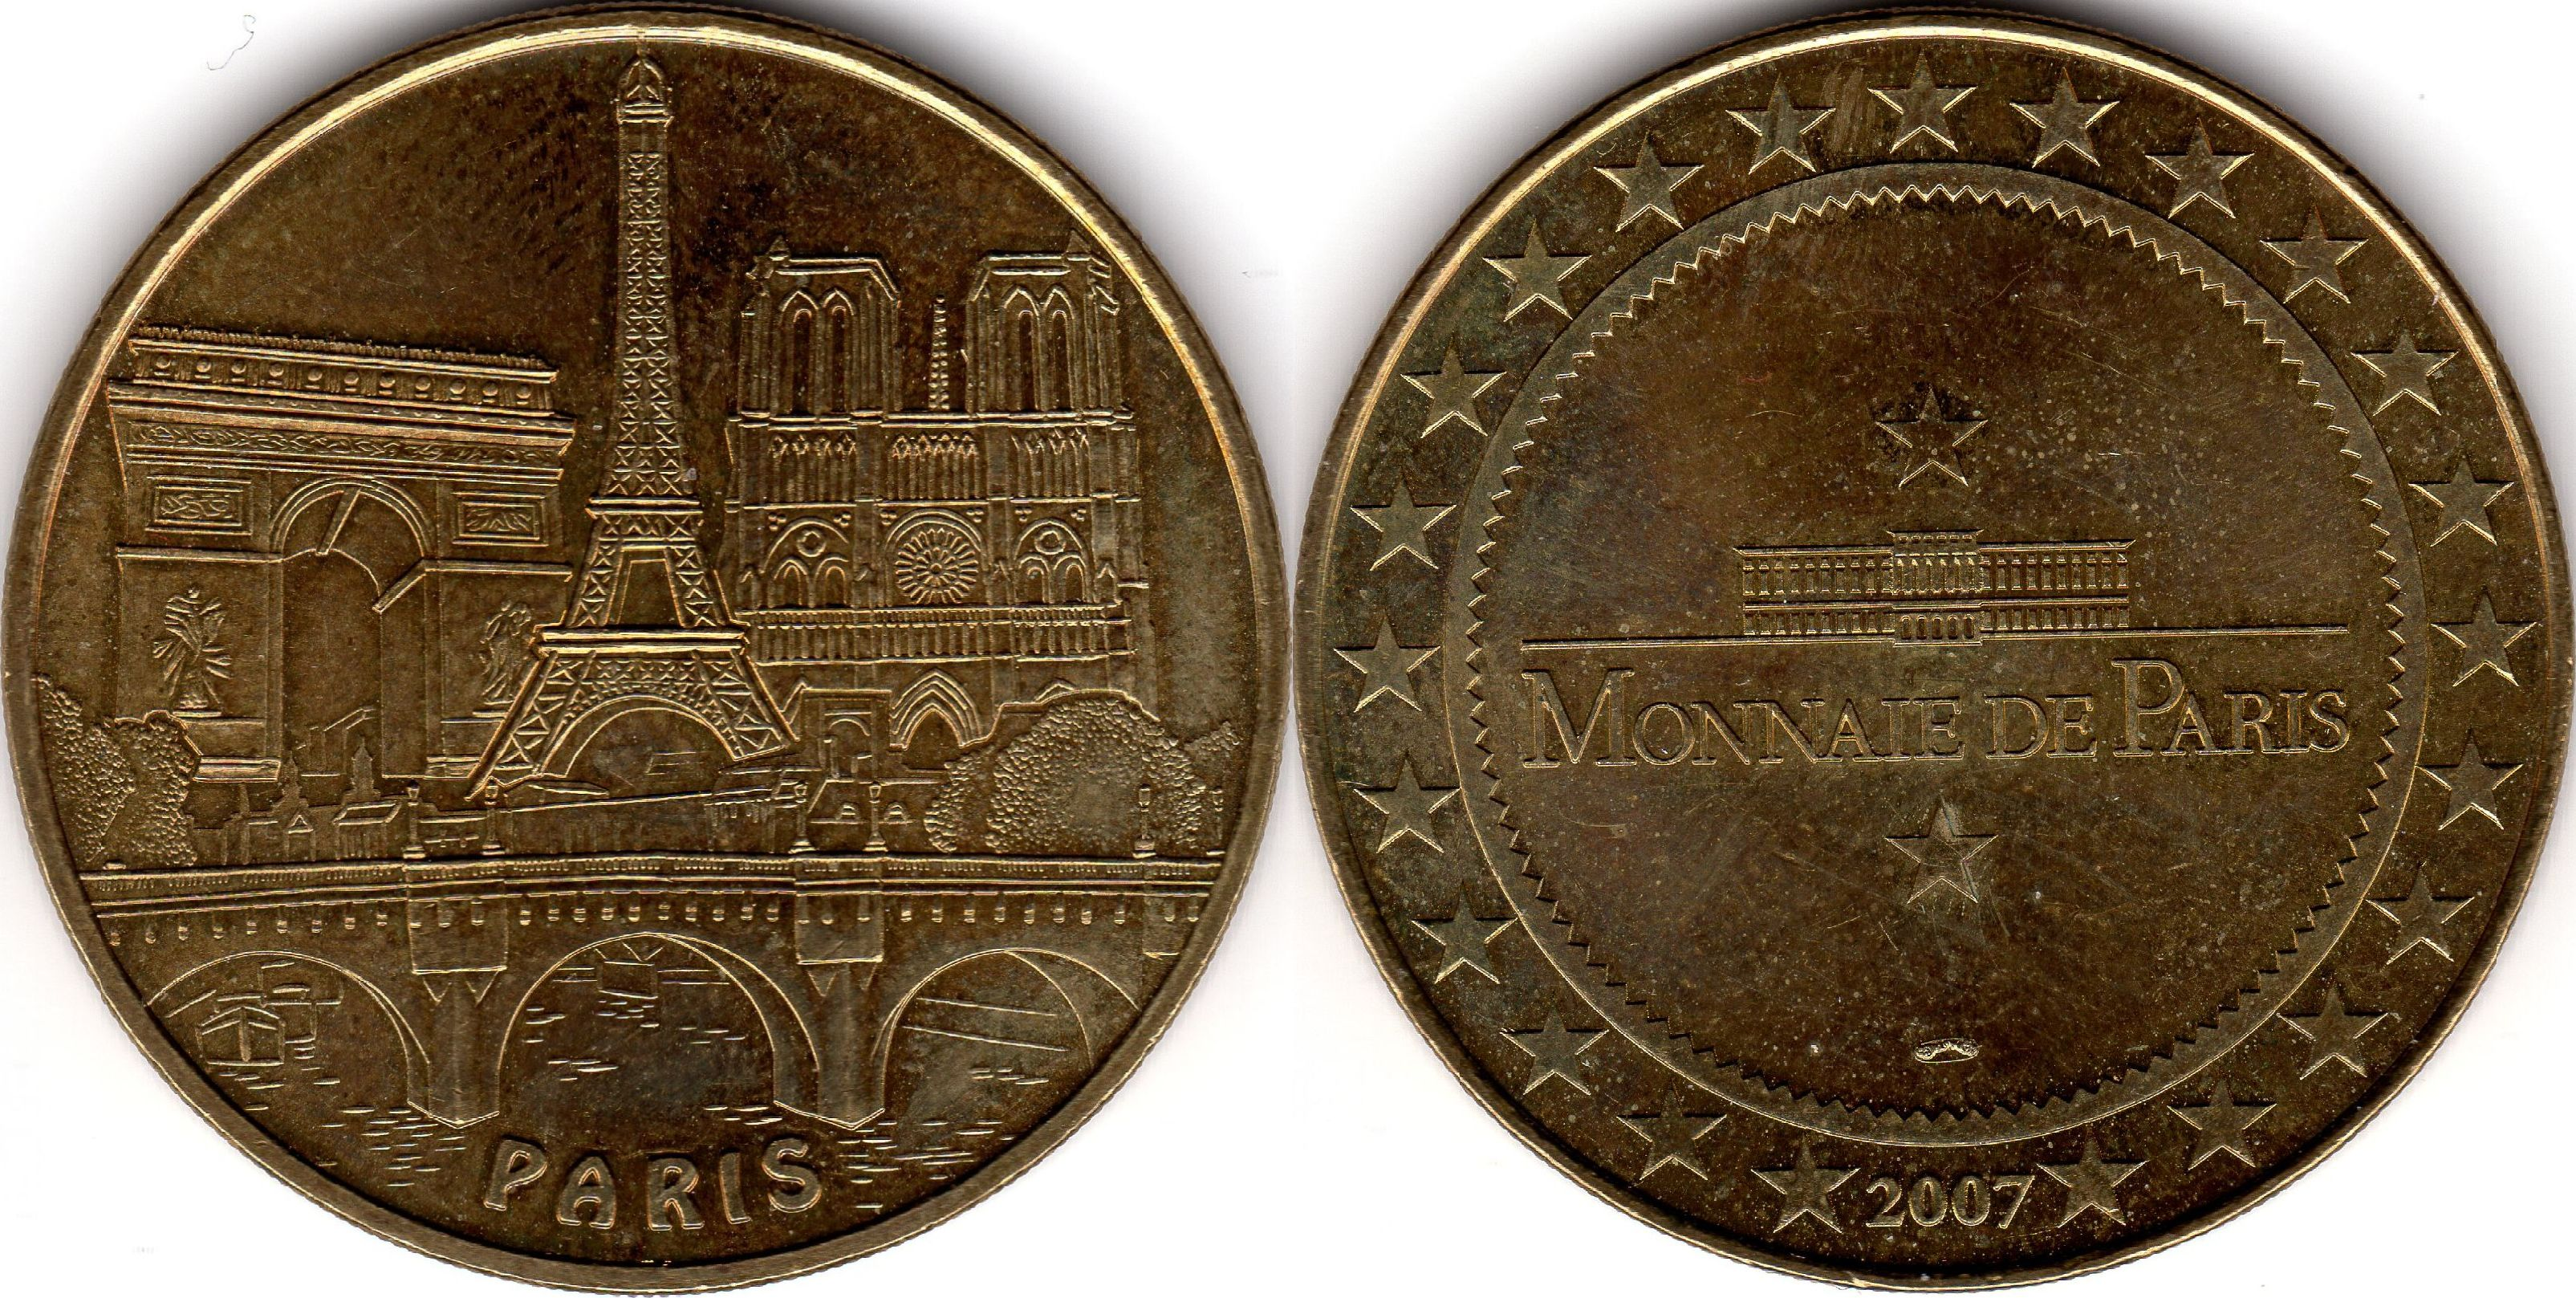 Nationaltoken Paris Edition 2007.jpg